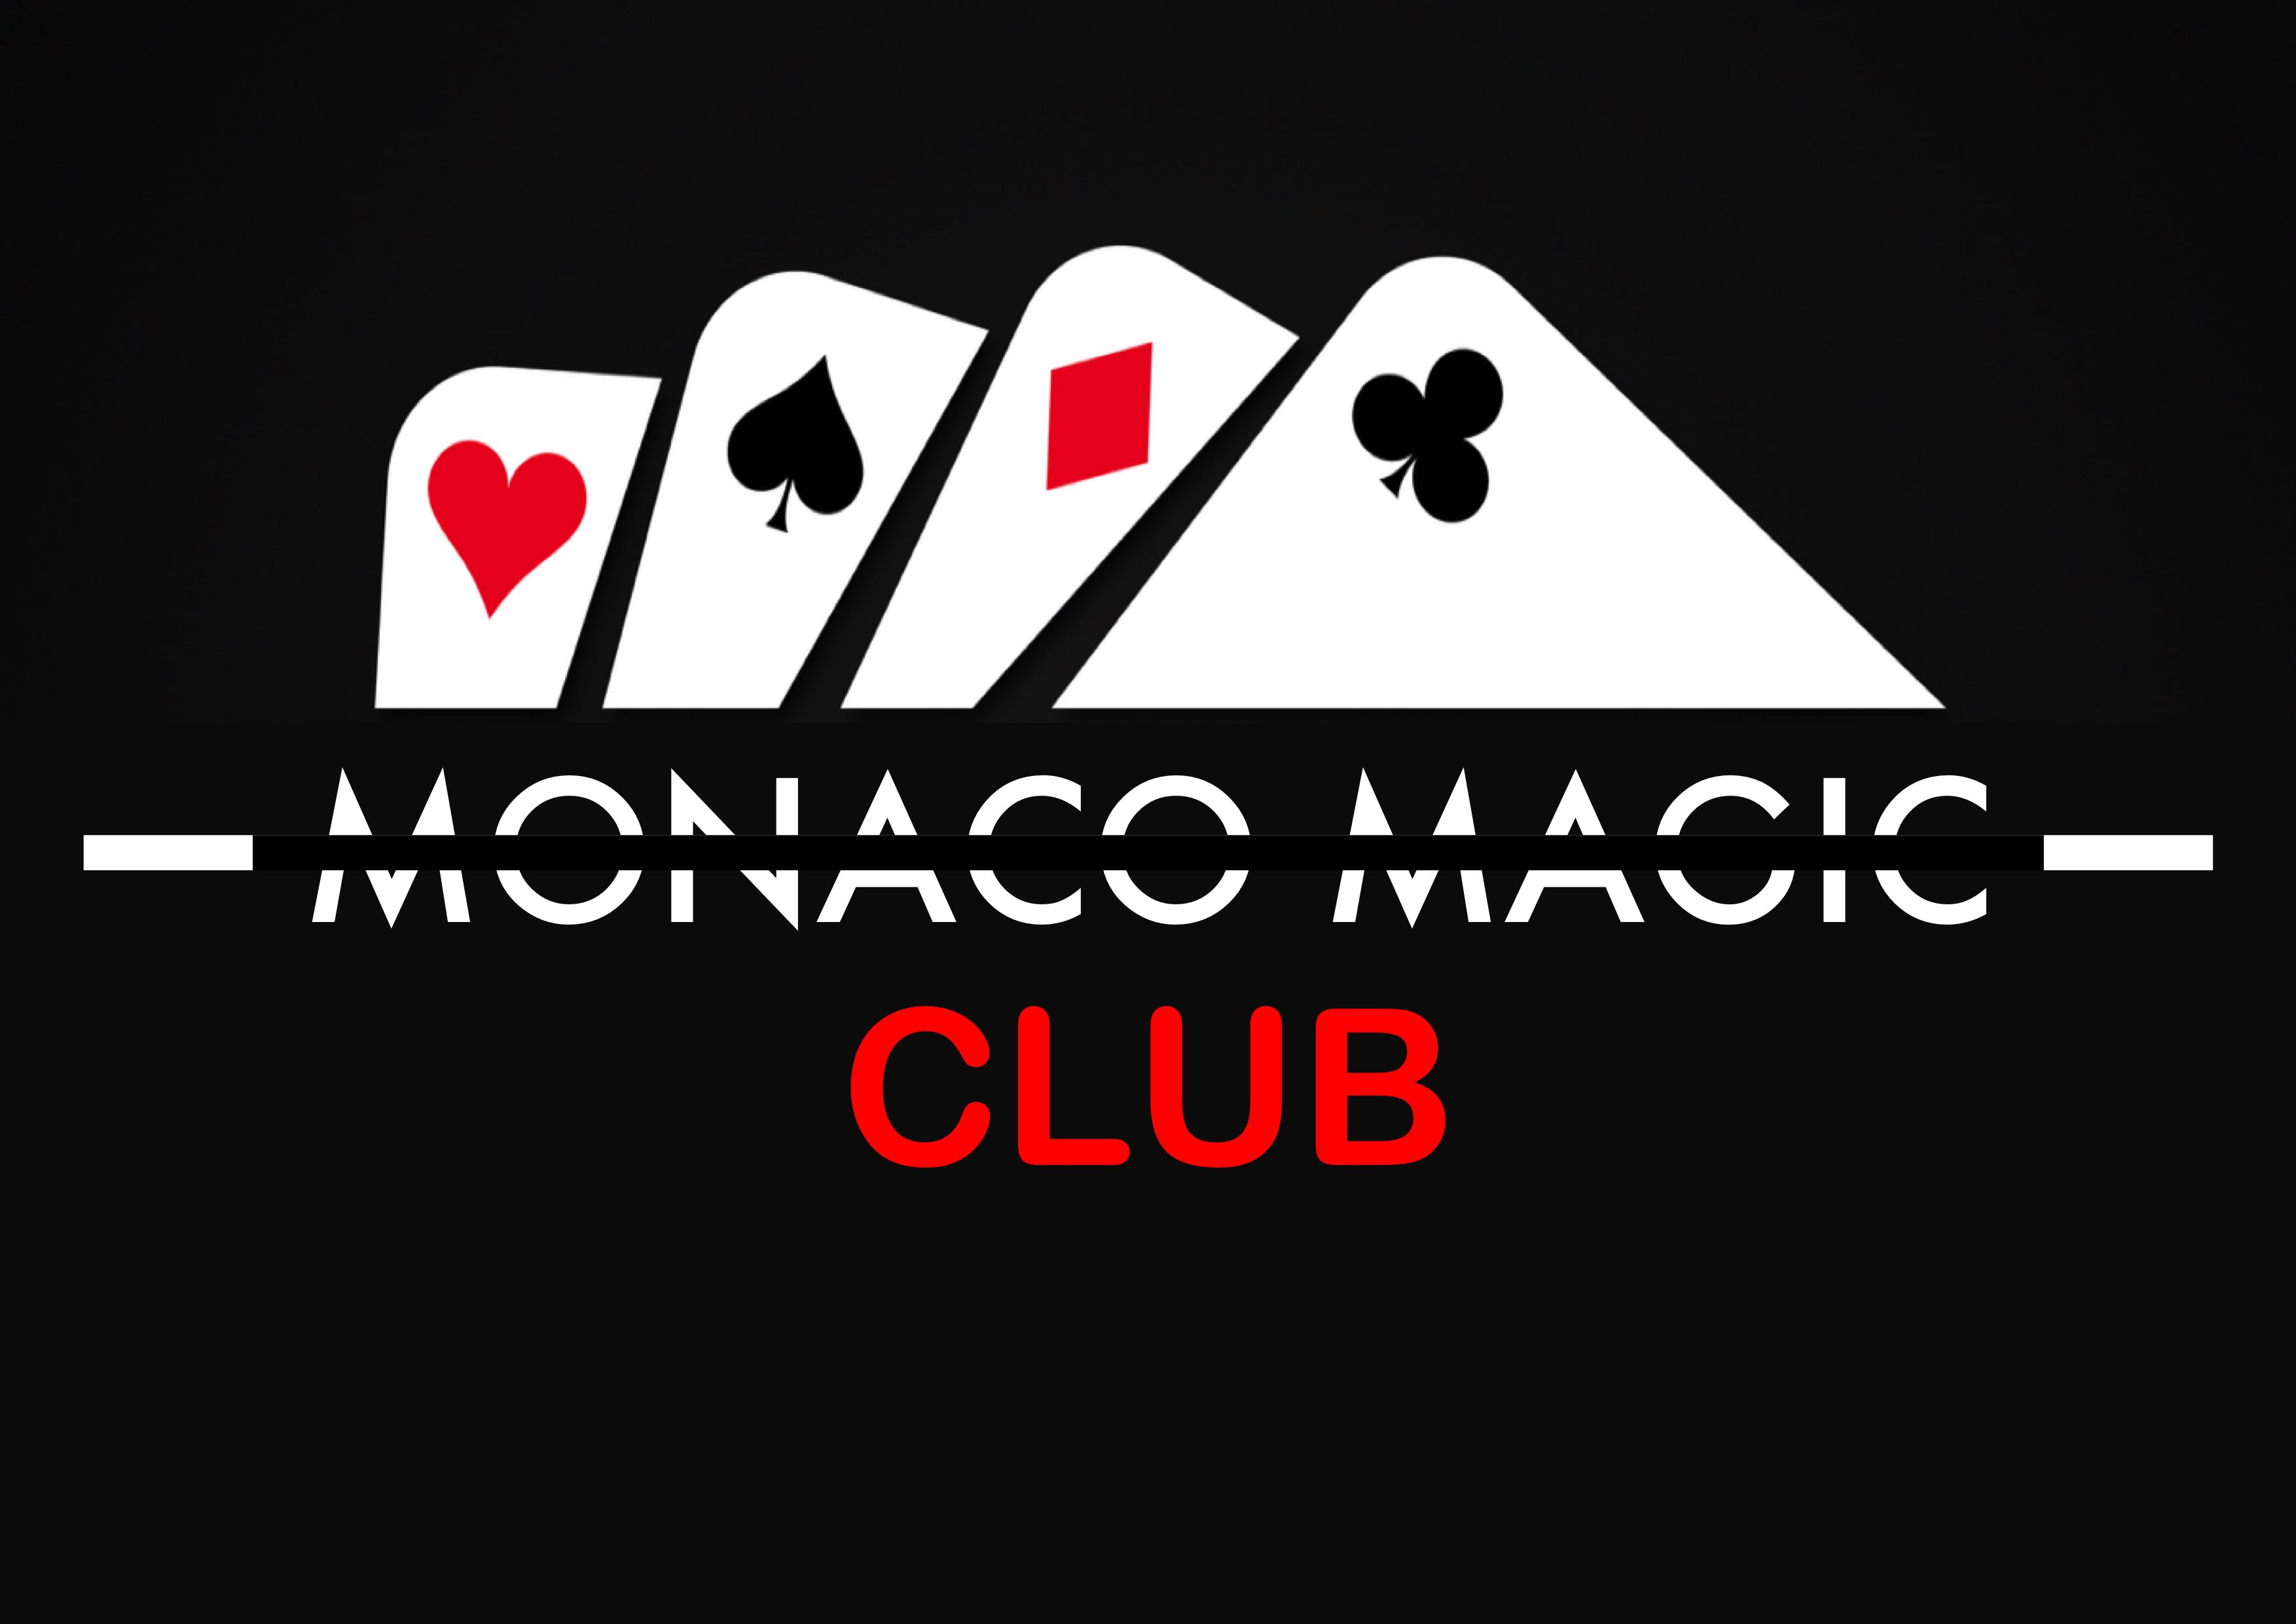 Monaco Magic Club